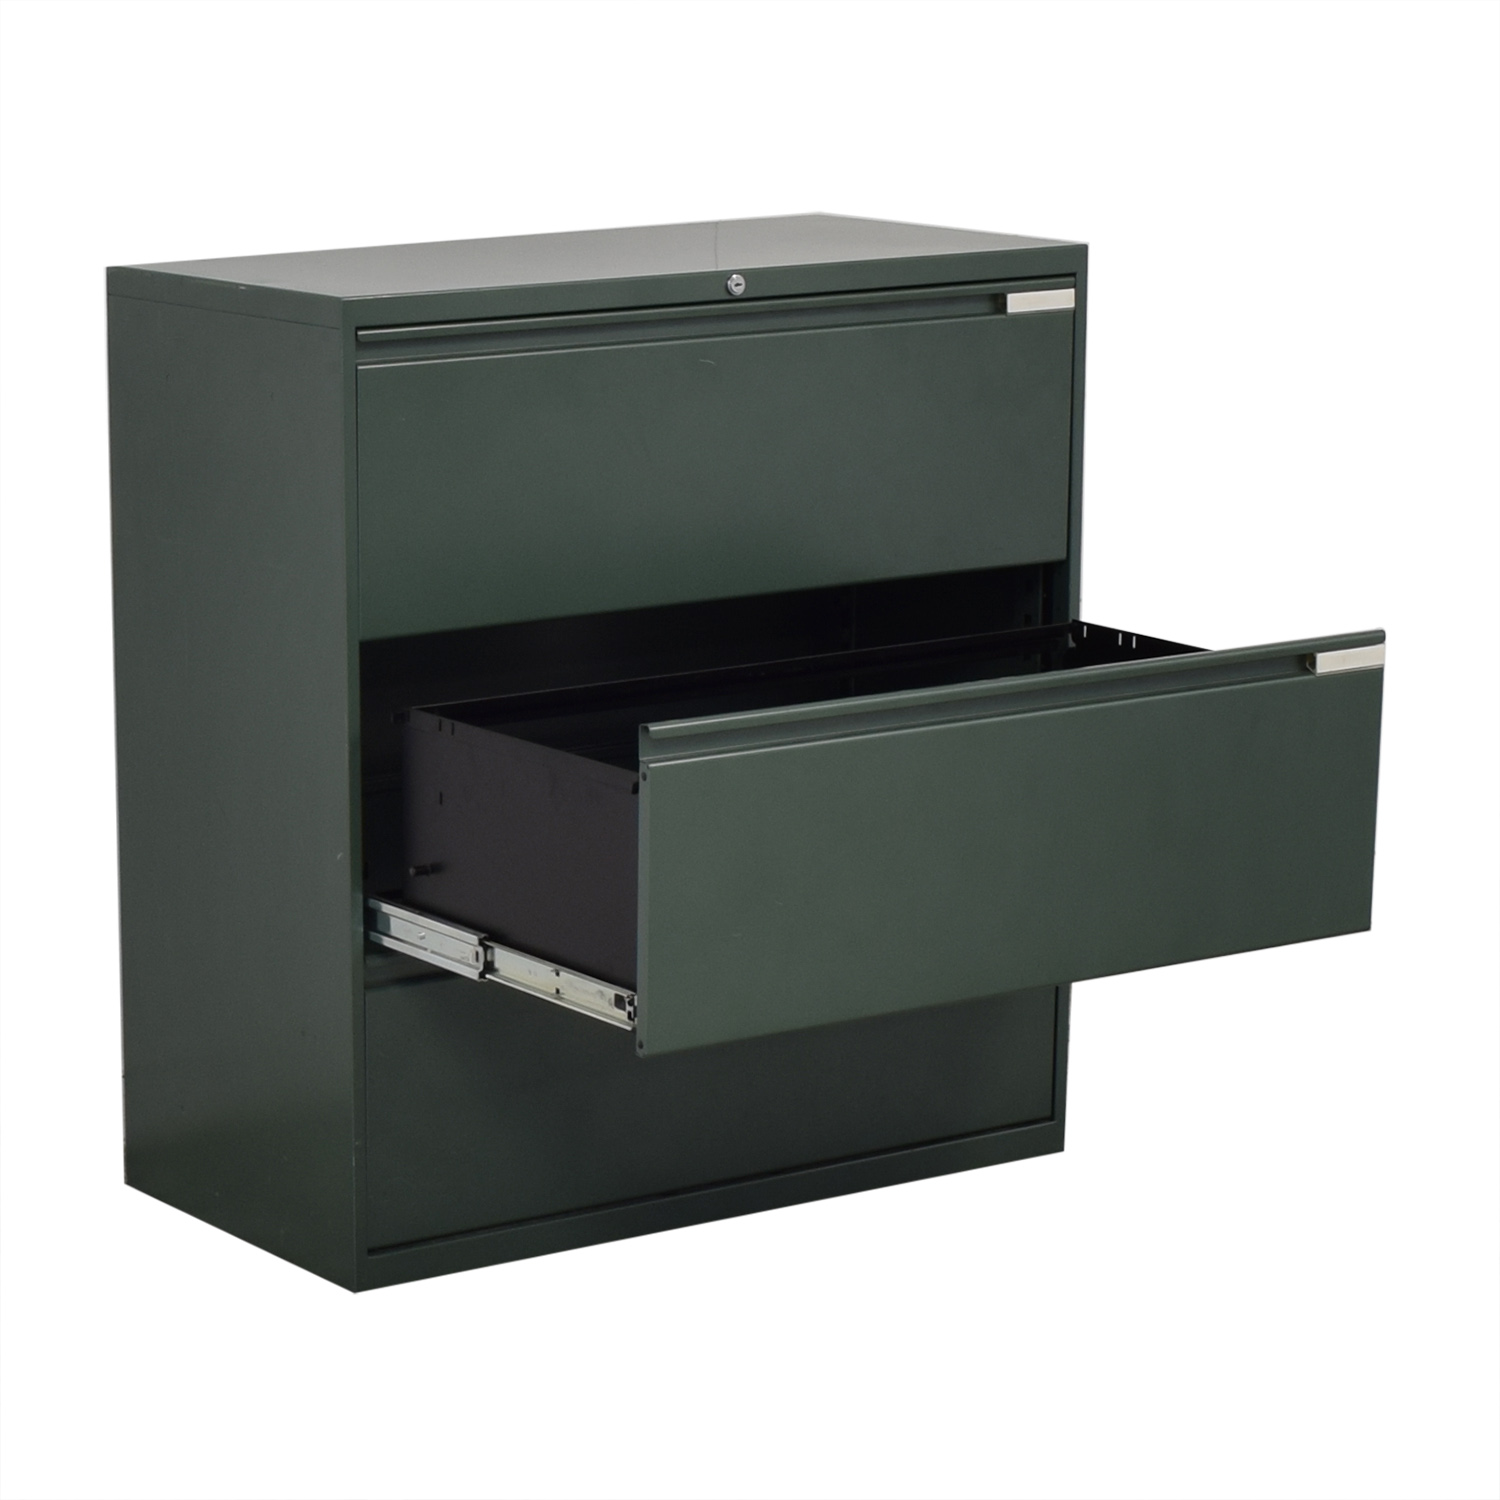 Office Specialty Office Speciality Three Drawer Lateral File Cabinet second hand